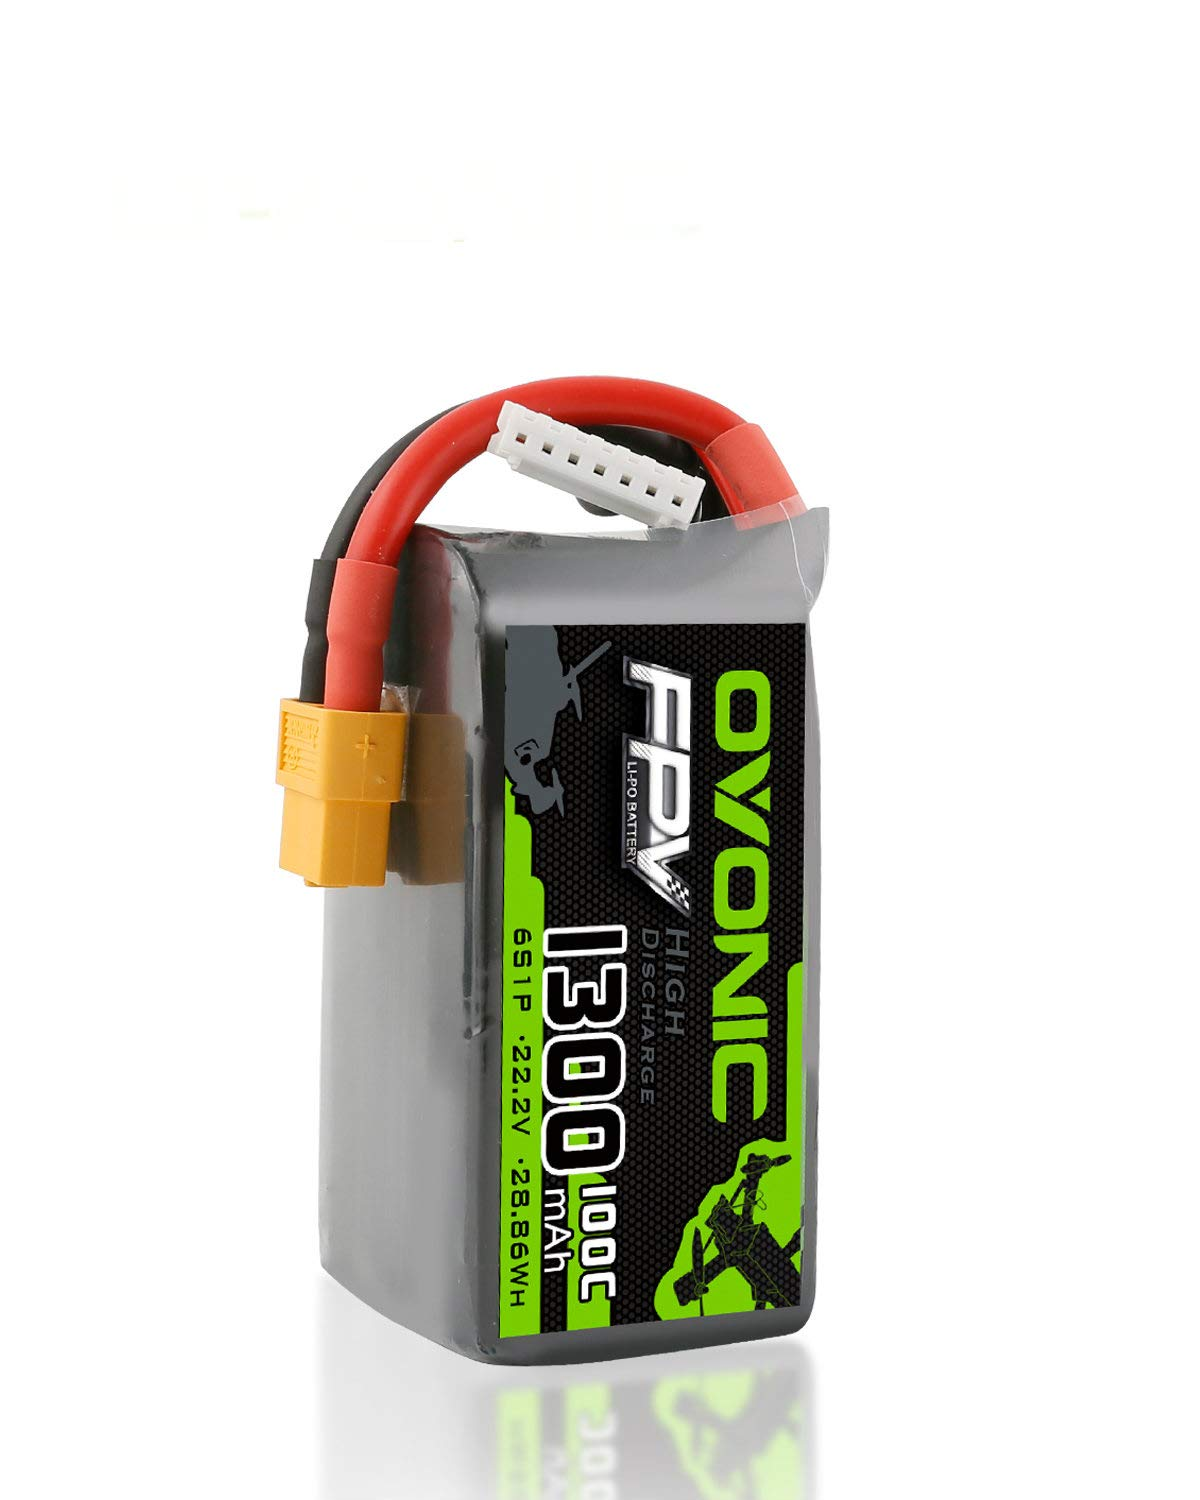 Ovonic 14.8V 1300mAh 100C 4S LiPo Battery Pack with XT60 Plug for FPV Racing RC Quadcopter Helicopter Airplane Multi-Motor Hobby DIY Parts